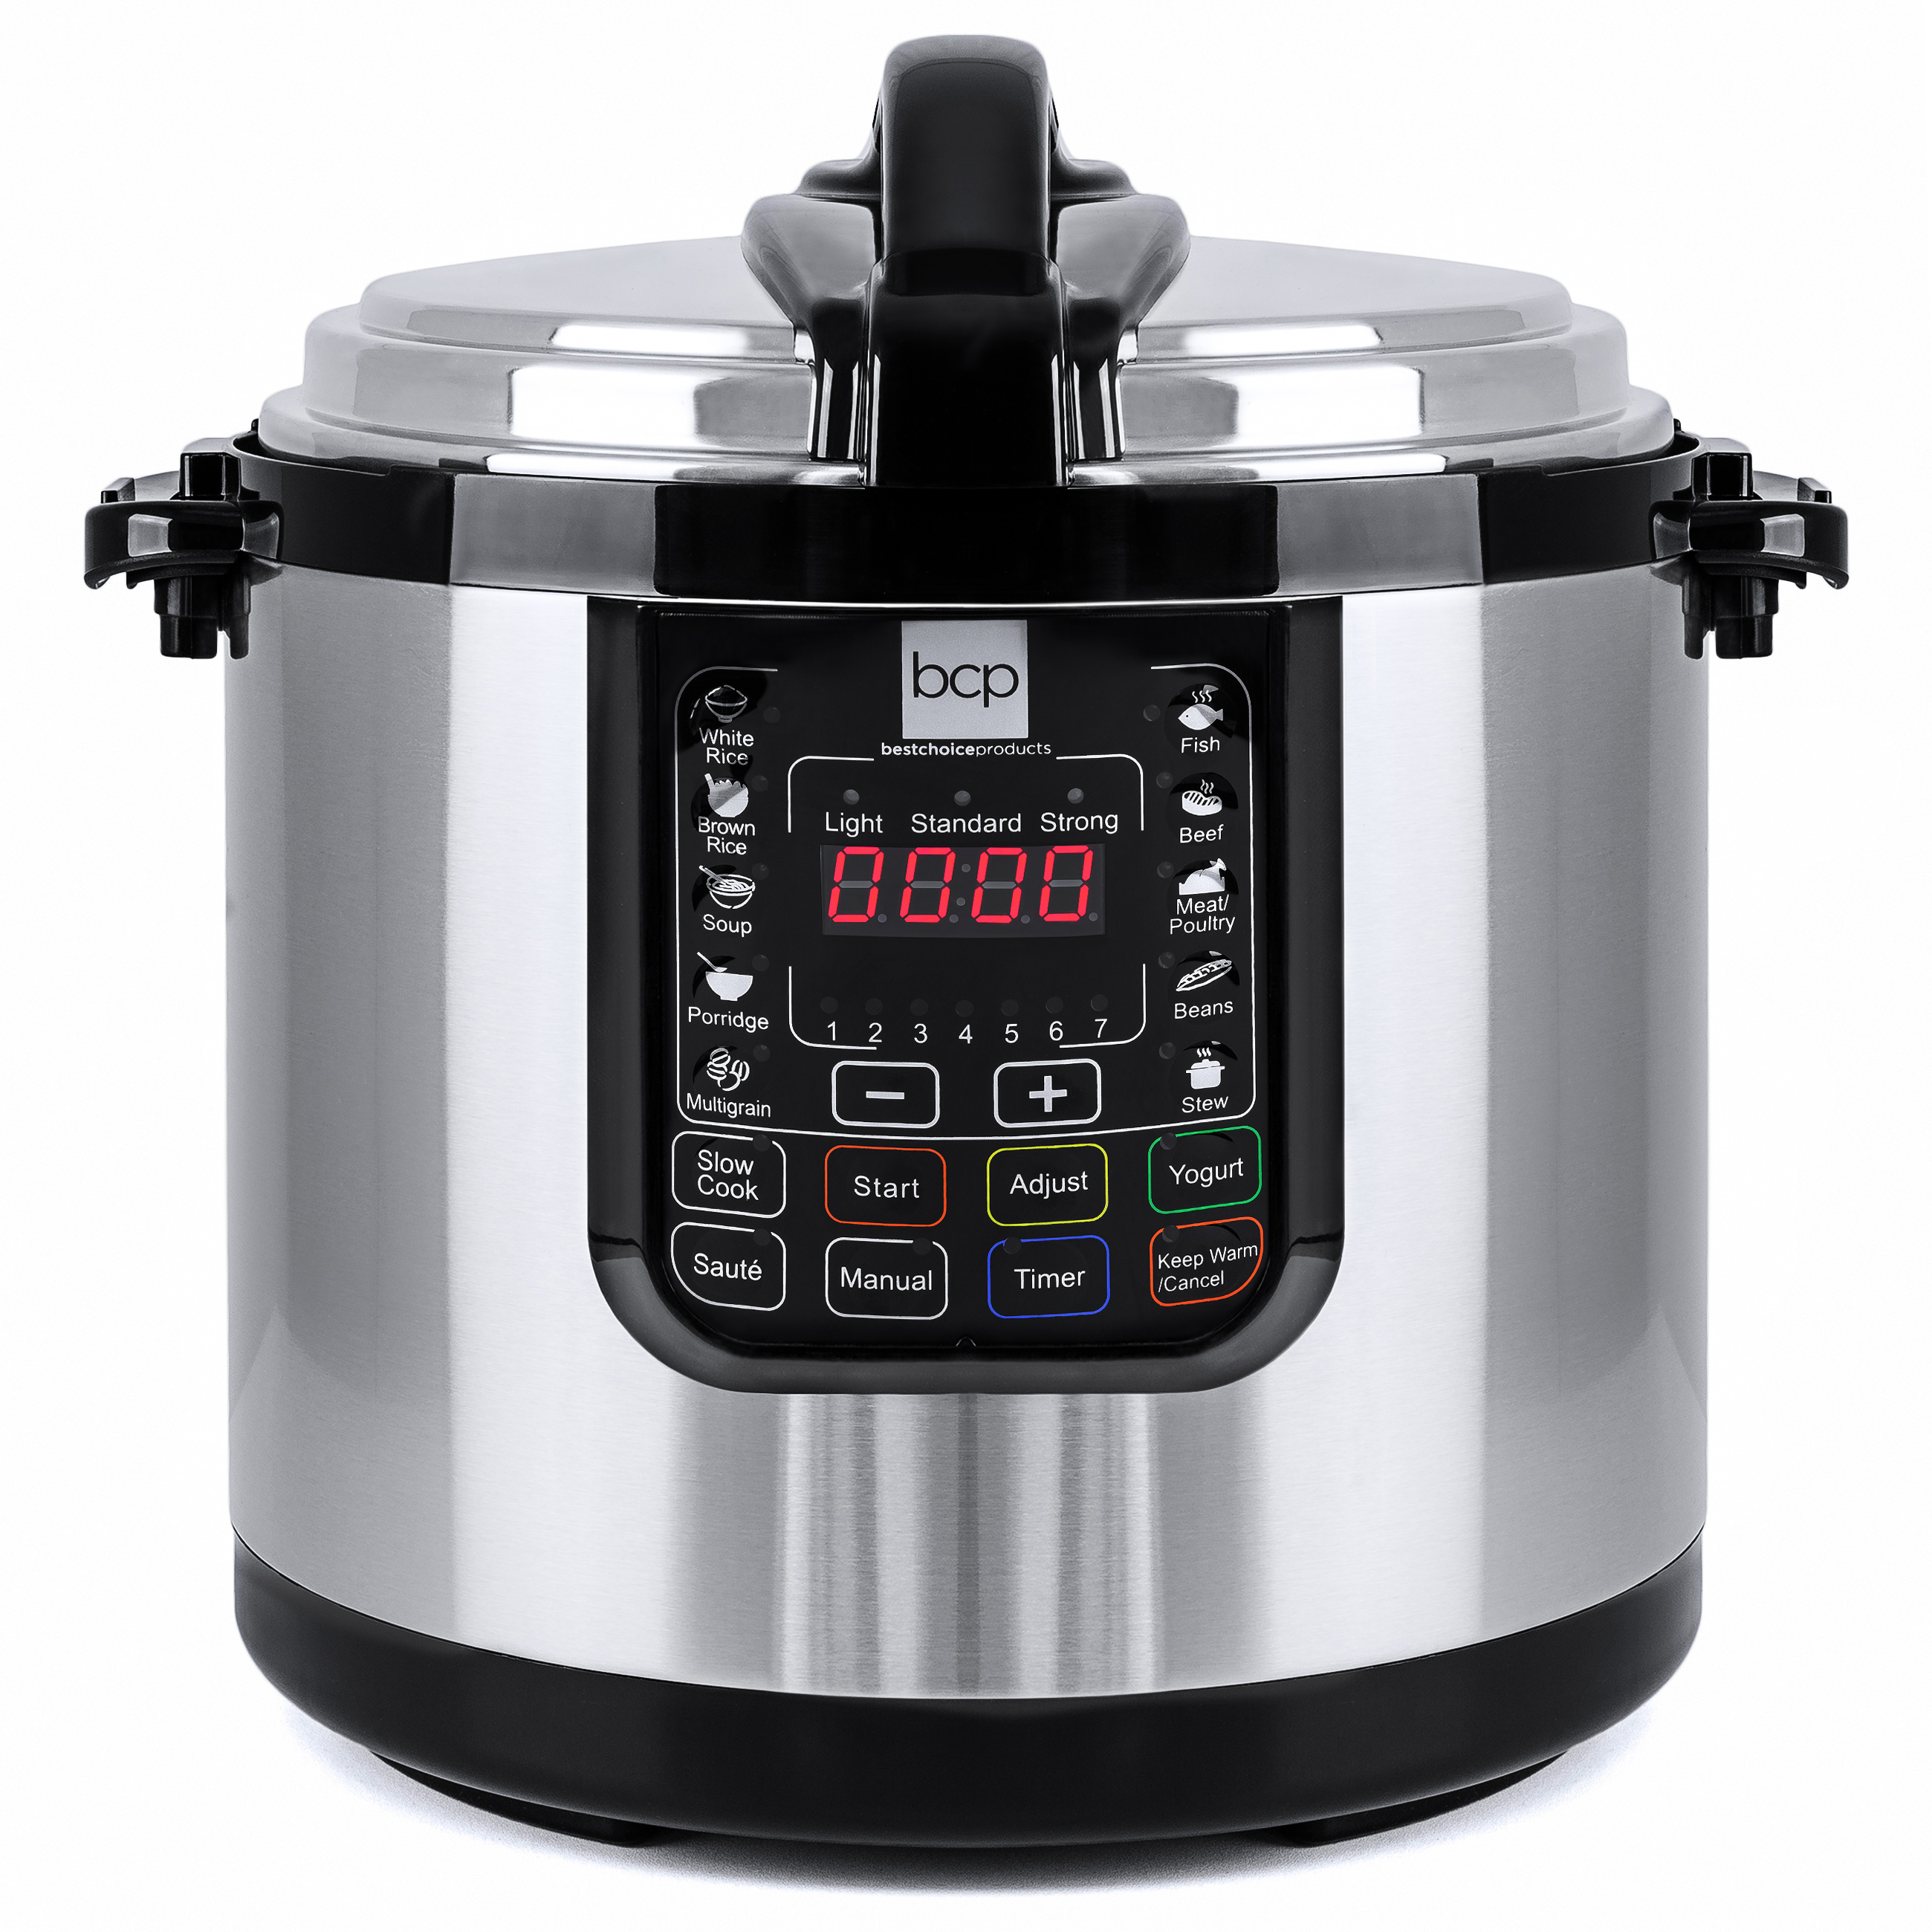 Best Choice Products 10-Liter 1000 Watt Stainless Steel Electric Pressure Cooker W/ LED